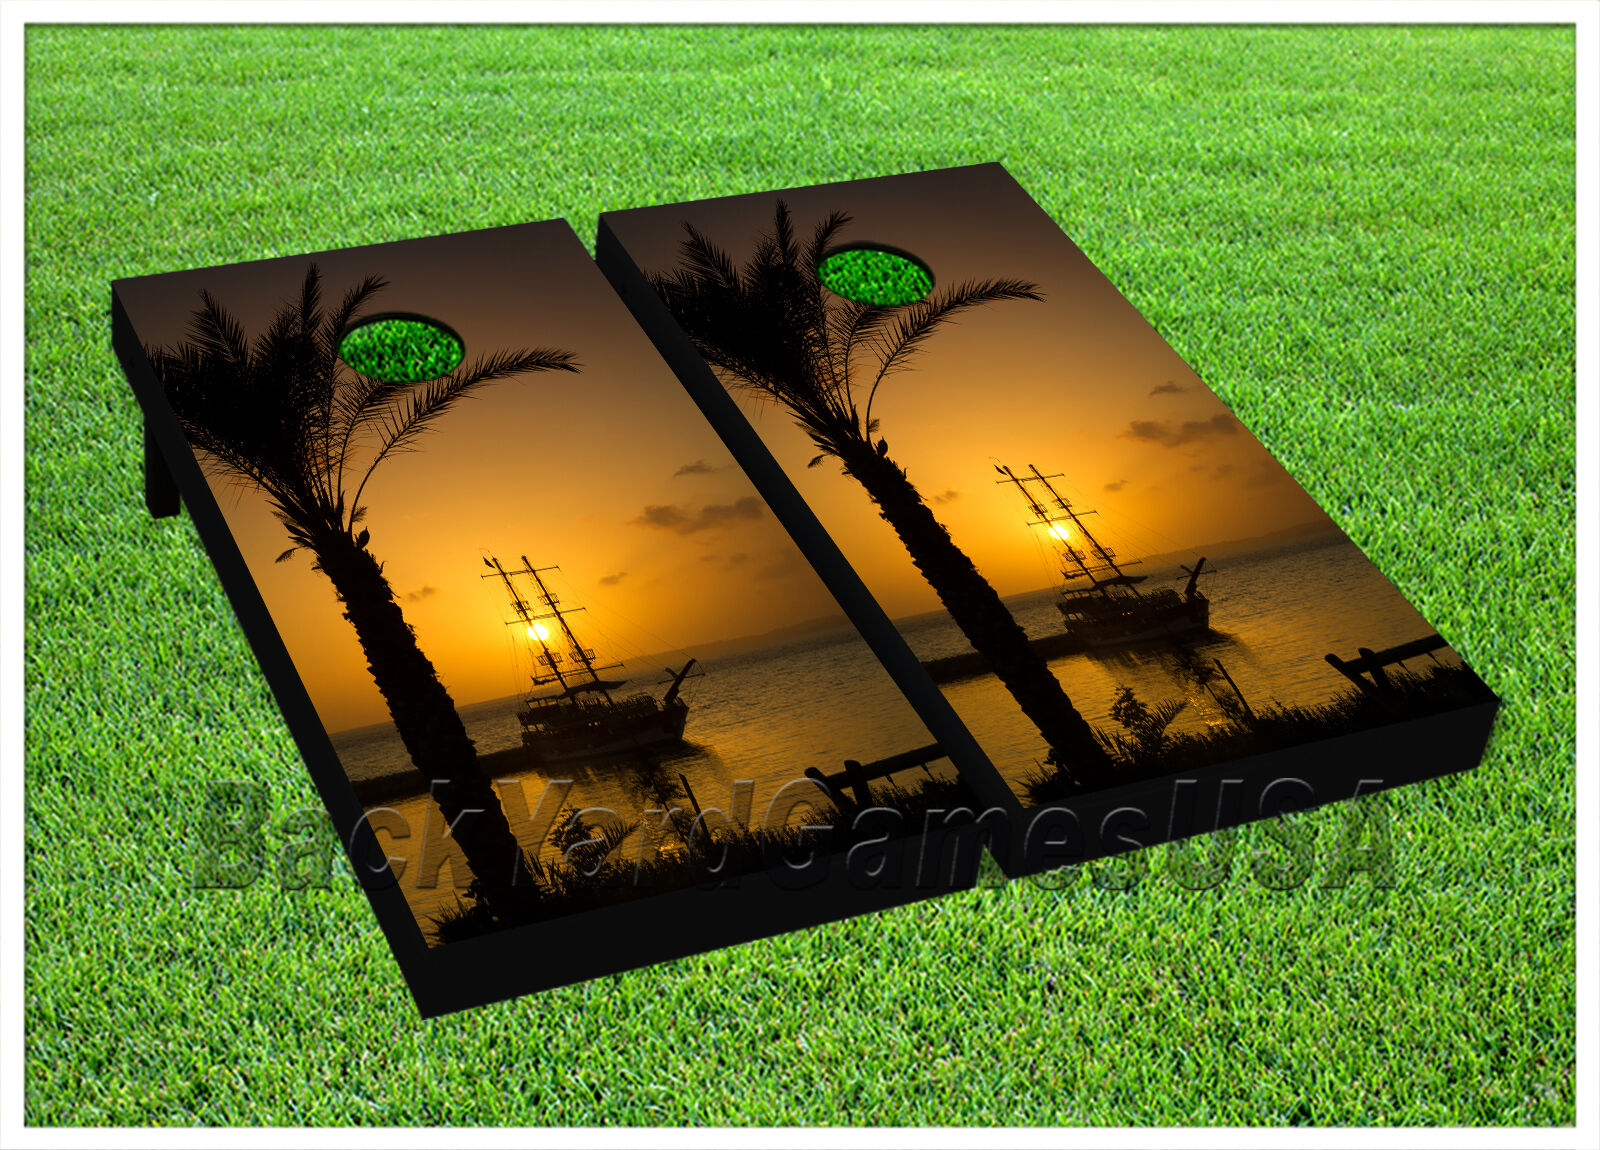 Ship in sunset CORNHOLE BEANBAG  TOSS GAME w Bags Game Boards Digital  Set 1038  fast shipping and best service